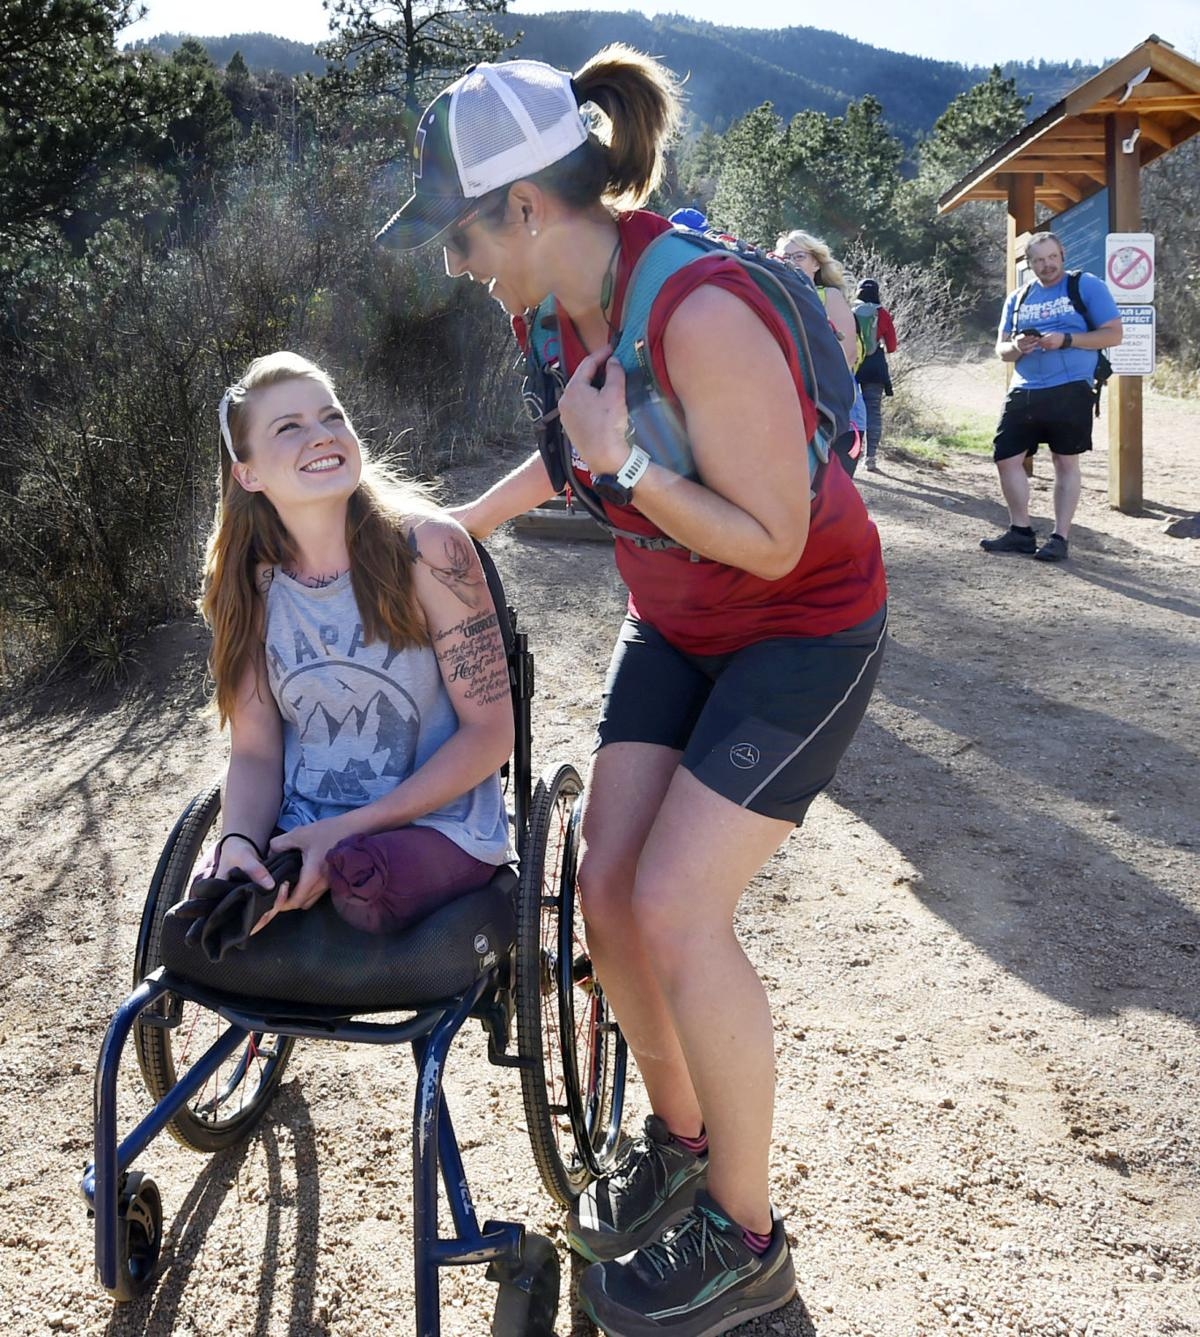 Amid Manitou Incline glory, double amputee continues to fight demons